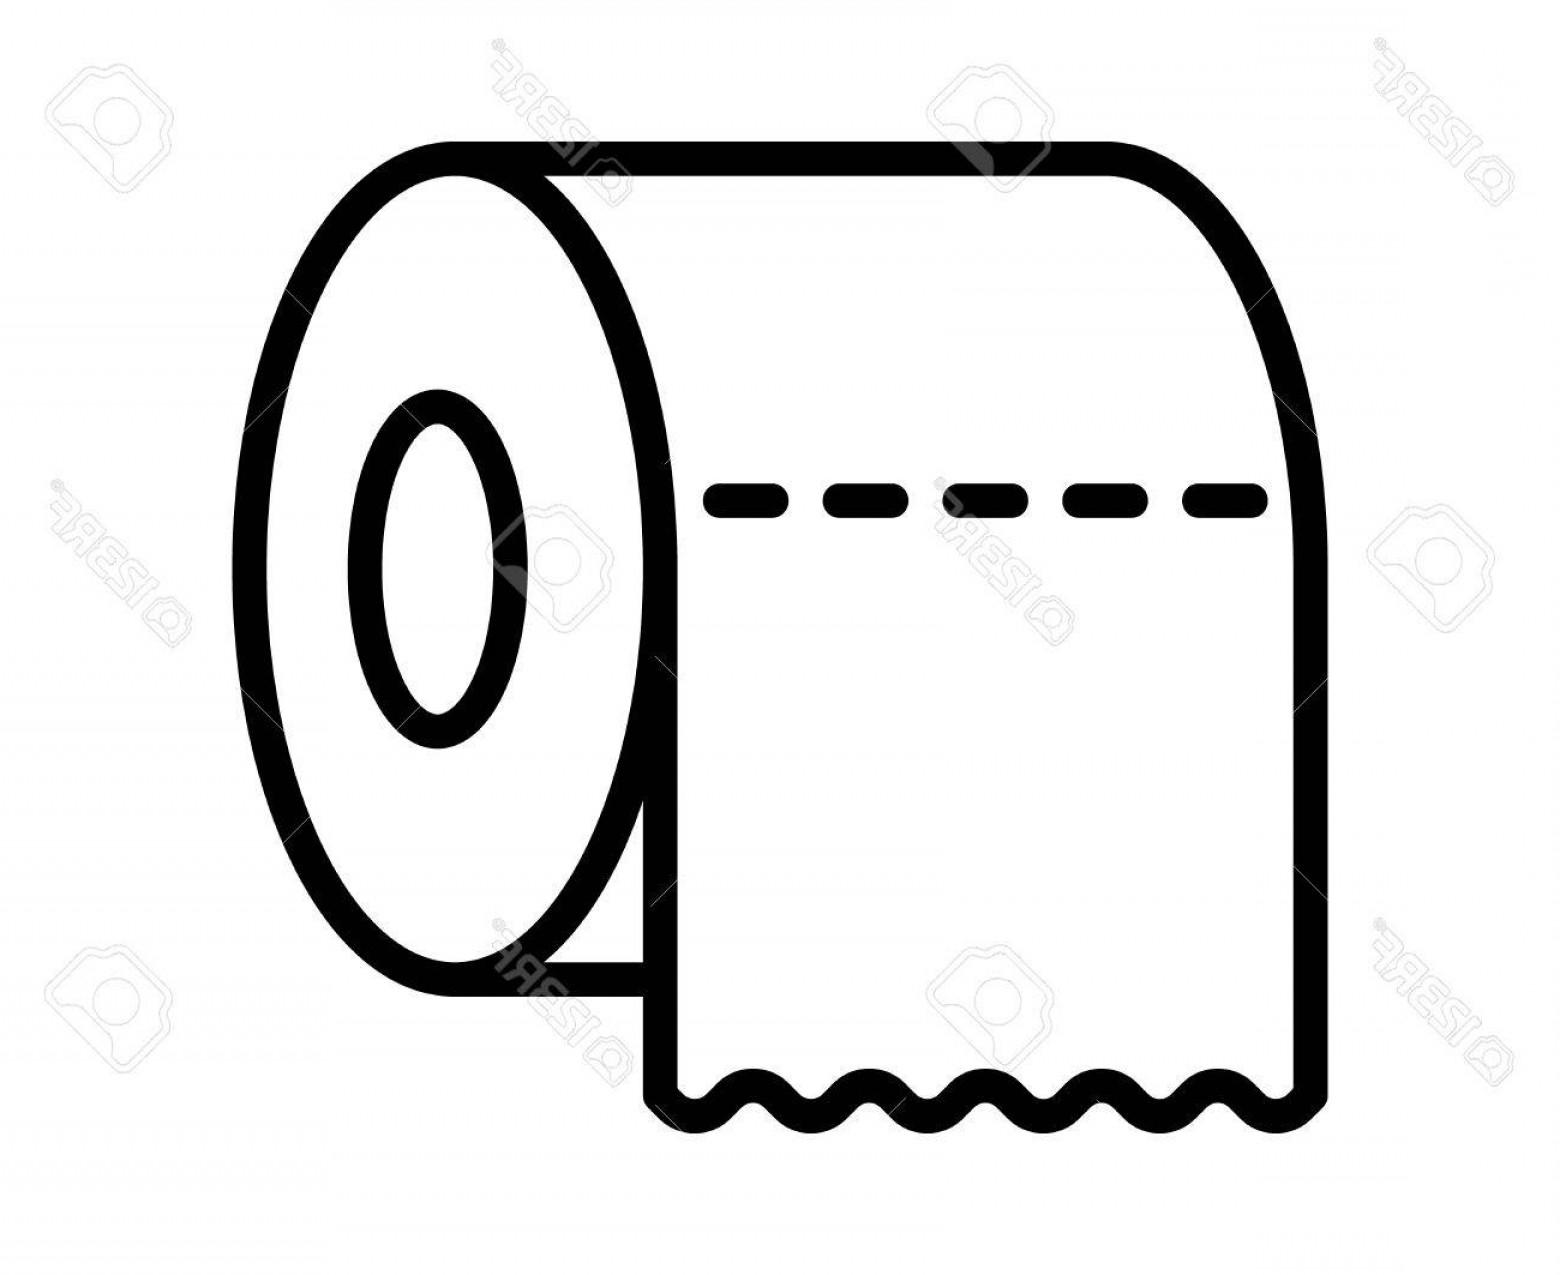 Toilet Paper Vector: Photostock Vector Toilet Tissue Paper Roll With Ridges Line Art Icon For Apps And Websites